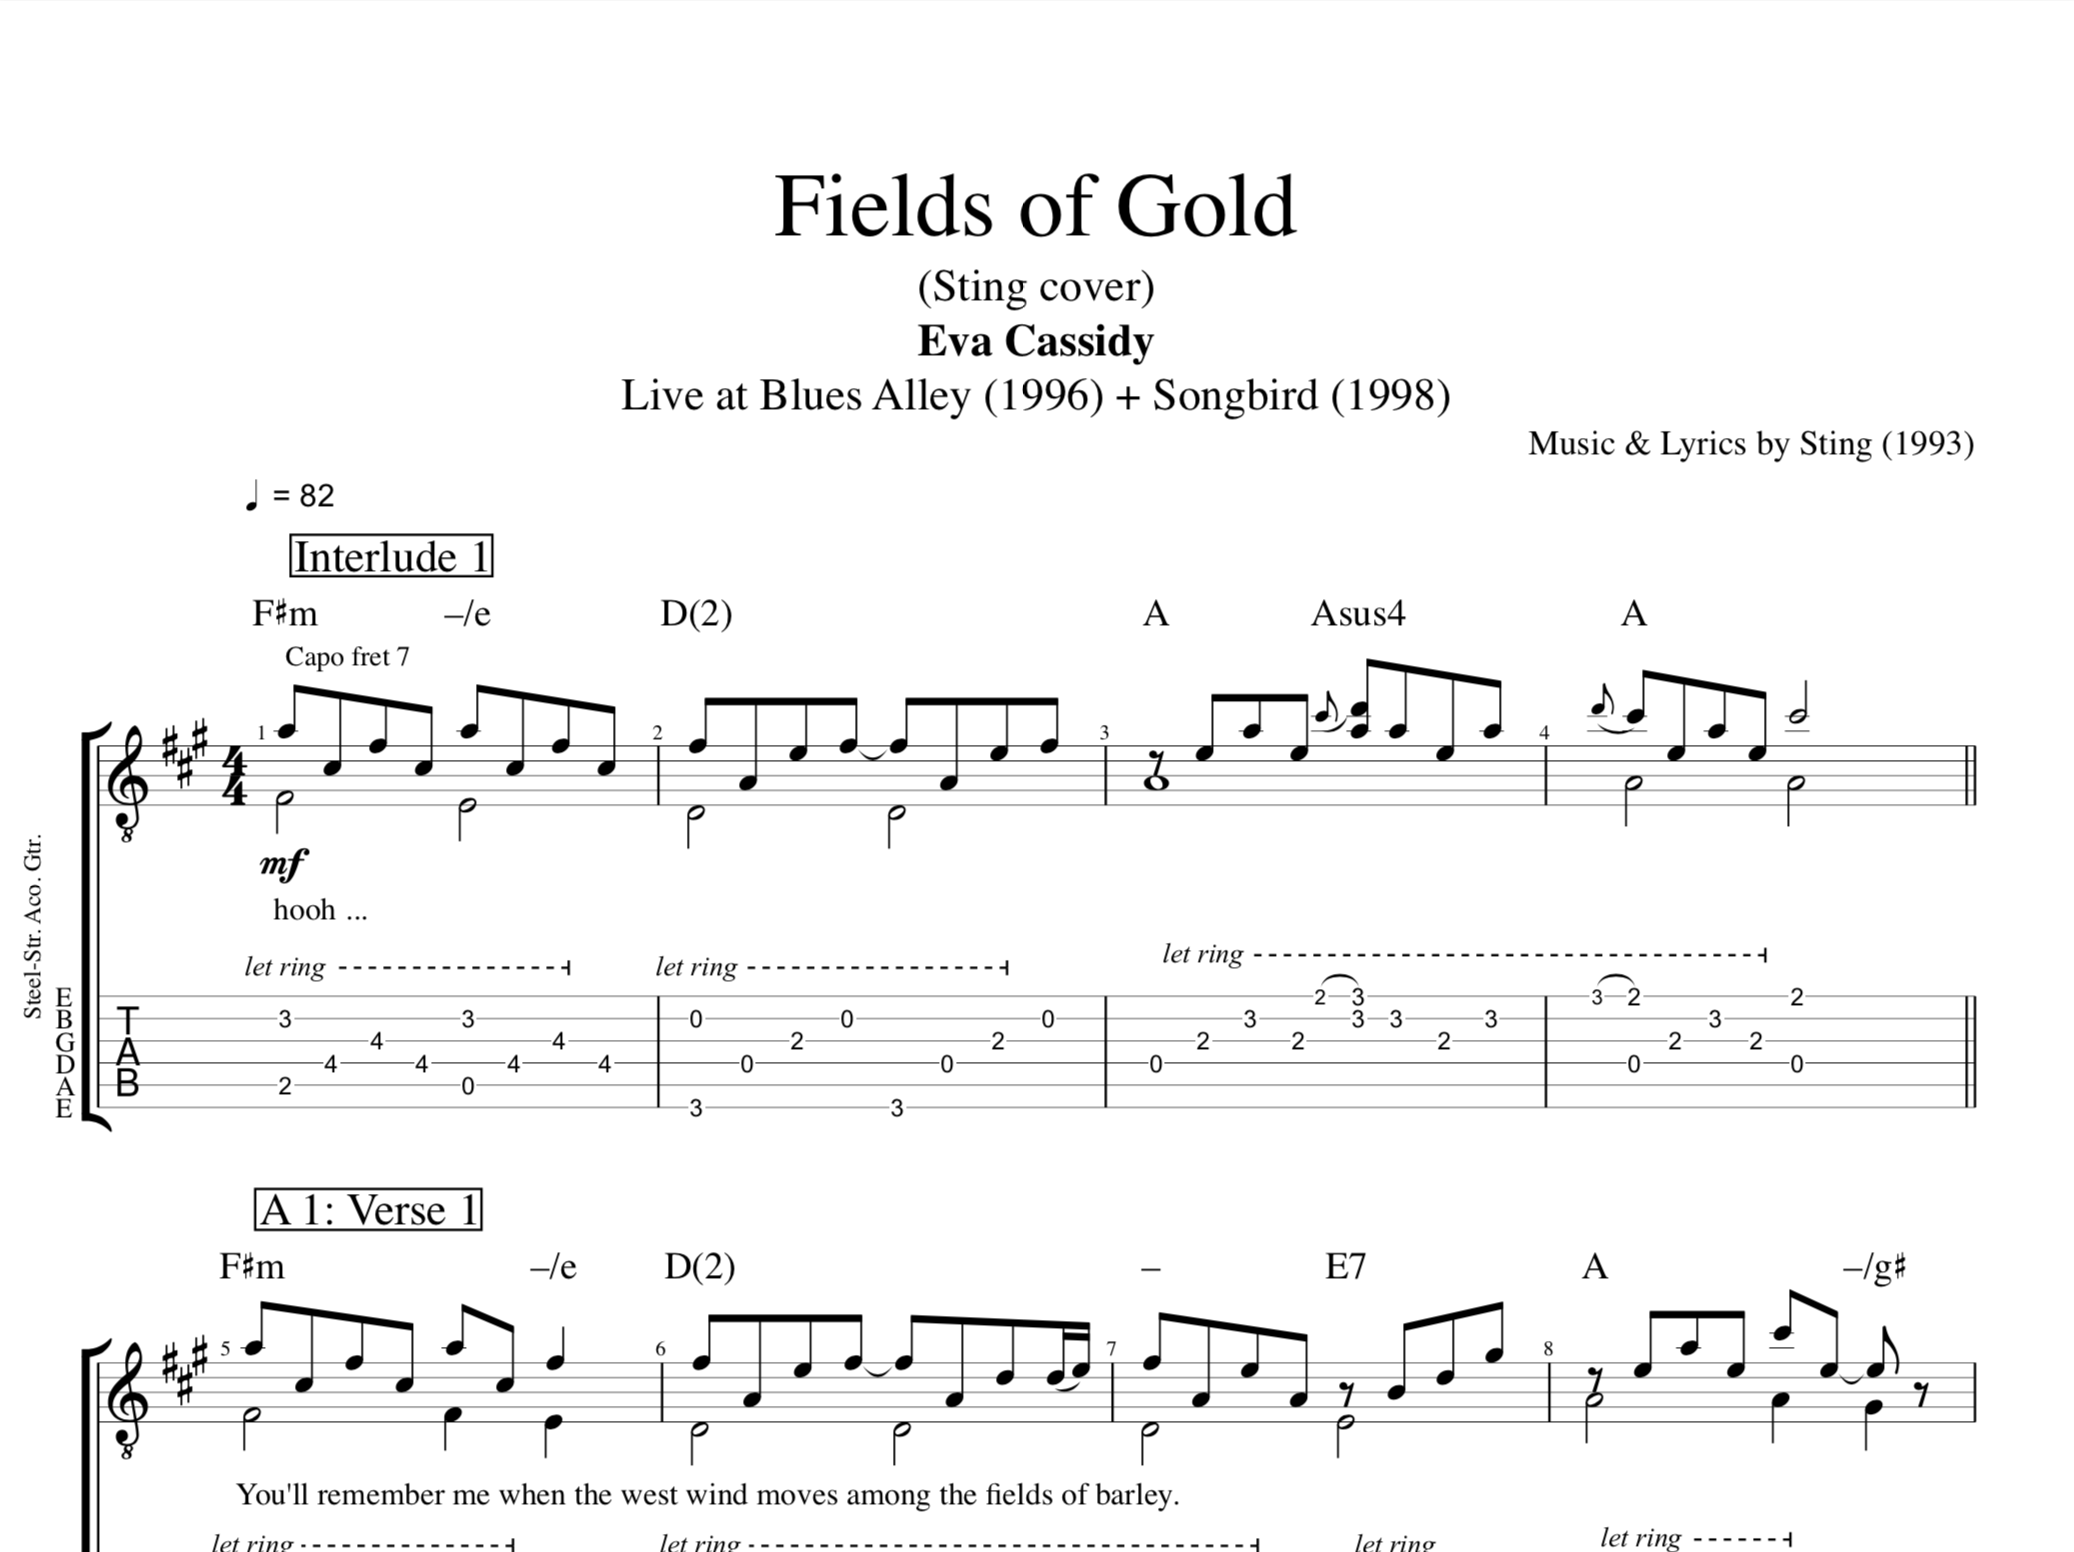 Fields Of Gold By Eva Cassidy Guitars Tabs Chords Sheet Musicscore Lyrics Play Like The Greats Com